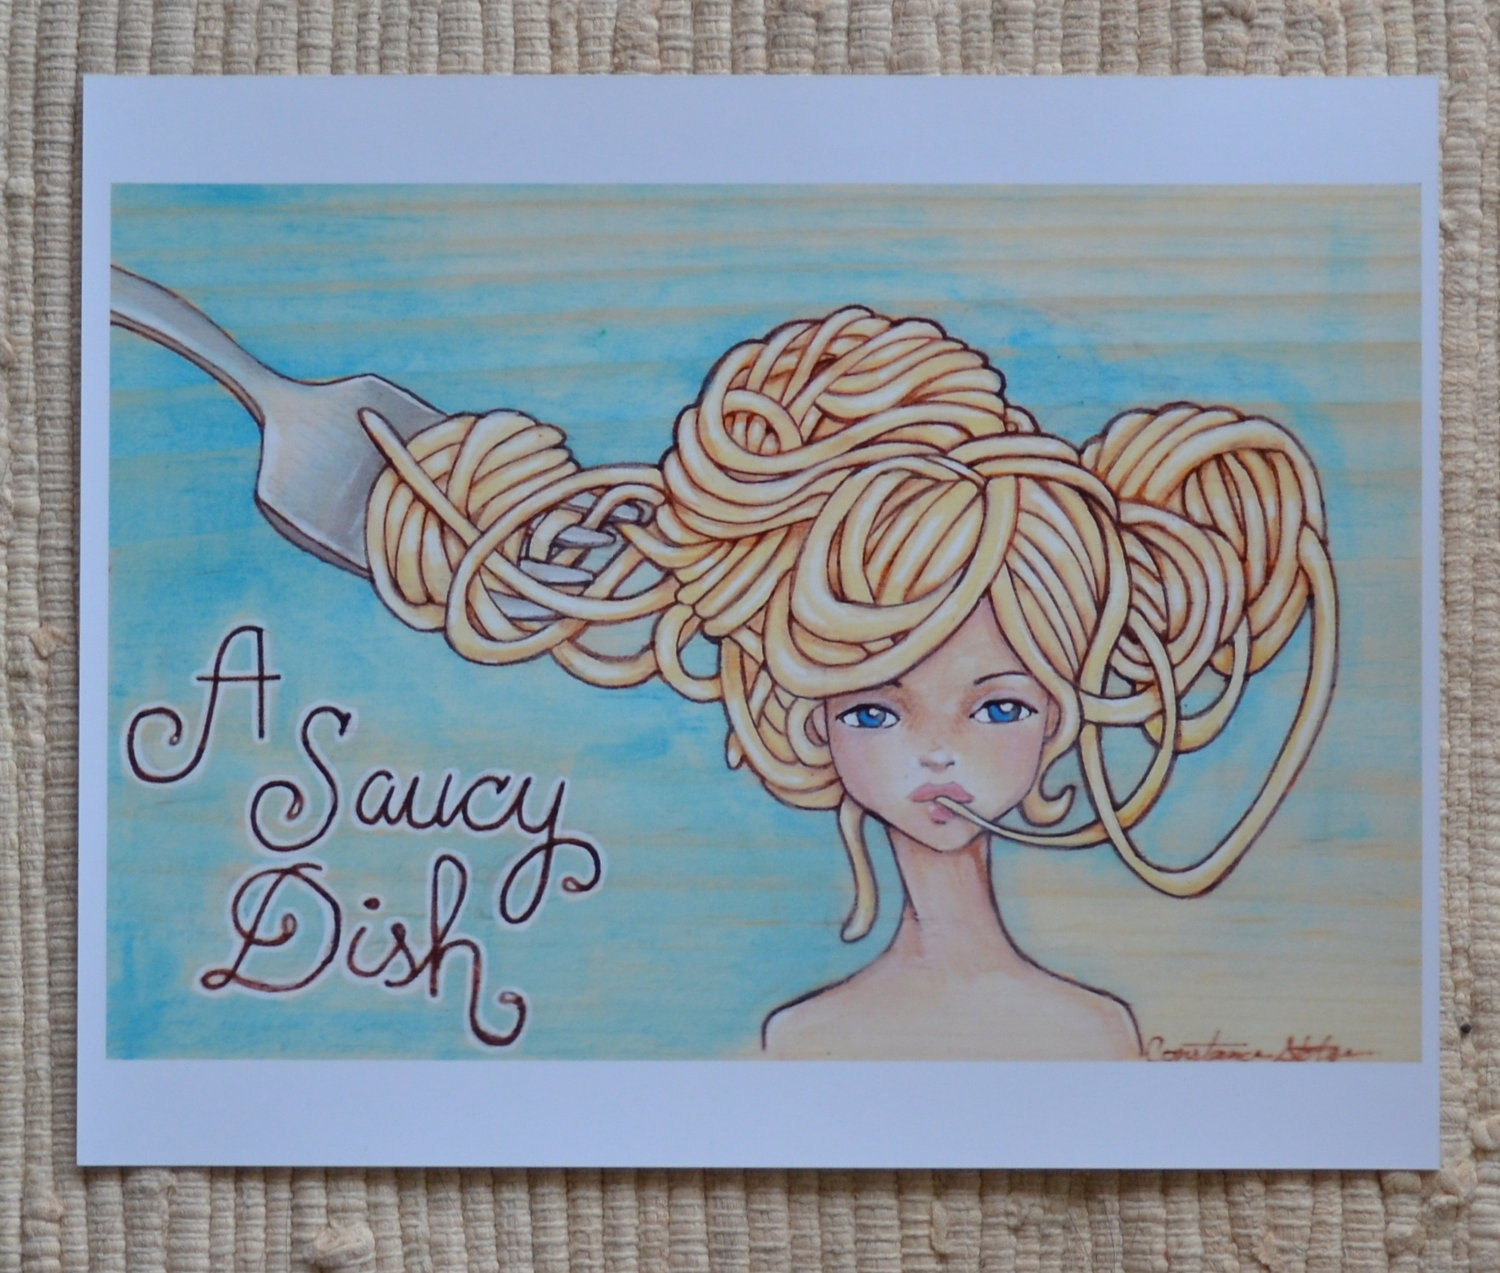 A Saucy Dish- Photographic Print of Pasta Girl 8x10